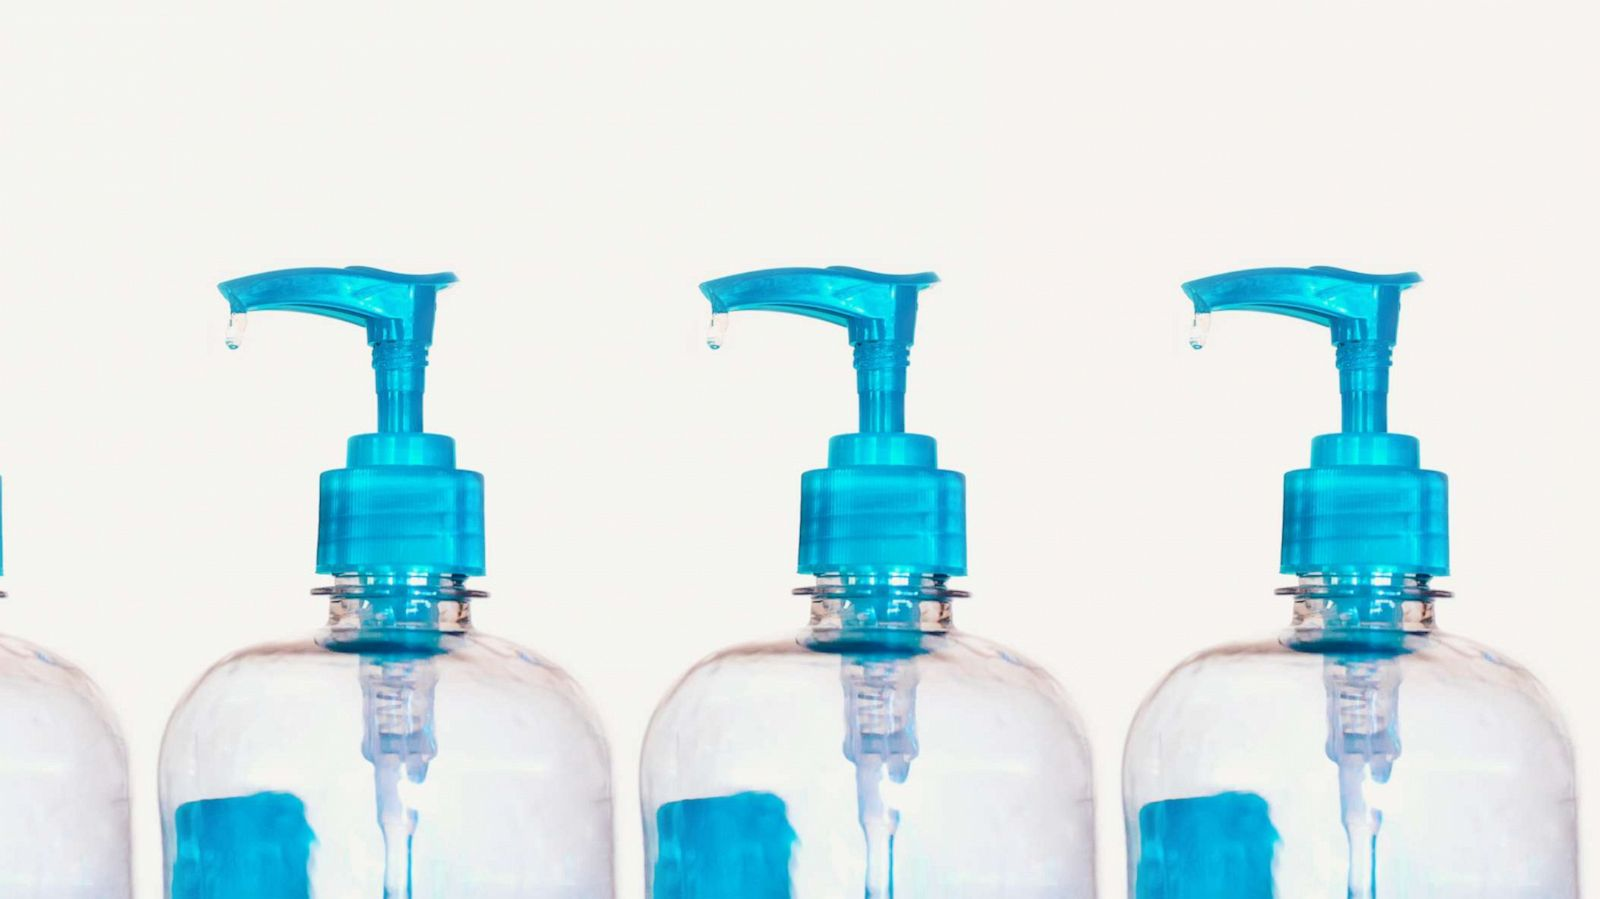 Toxic Ethanol in Hand Sanitizer Update